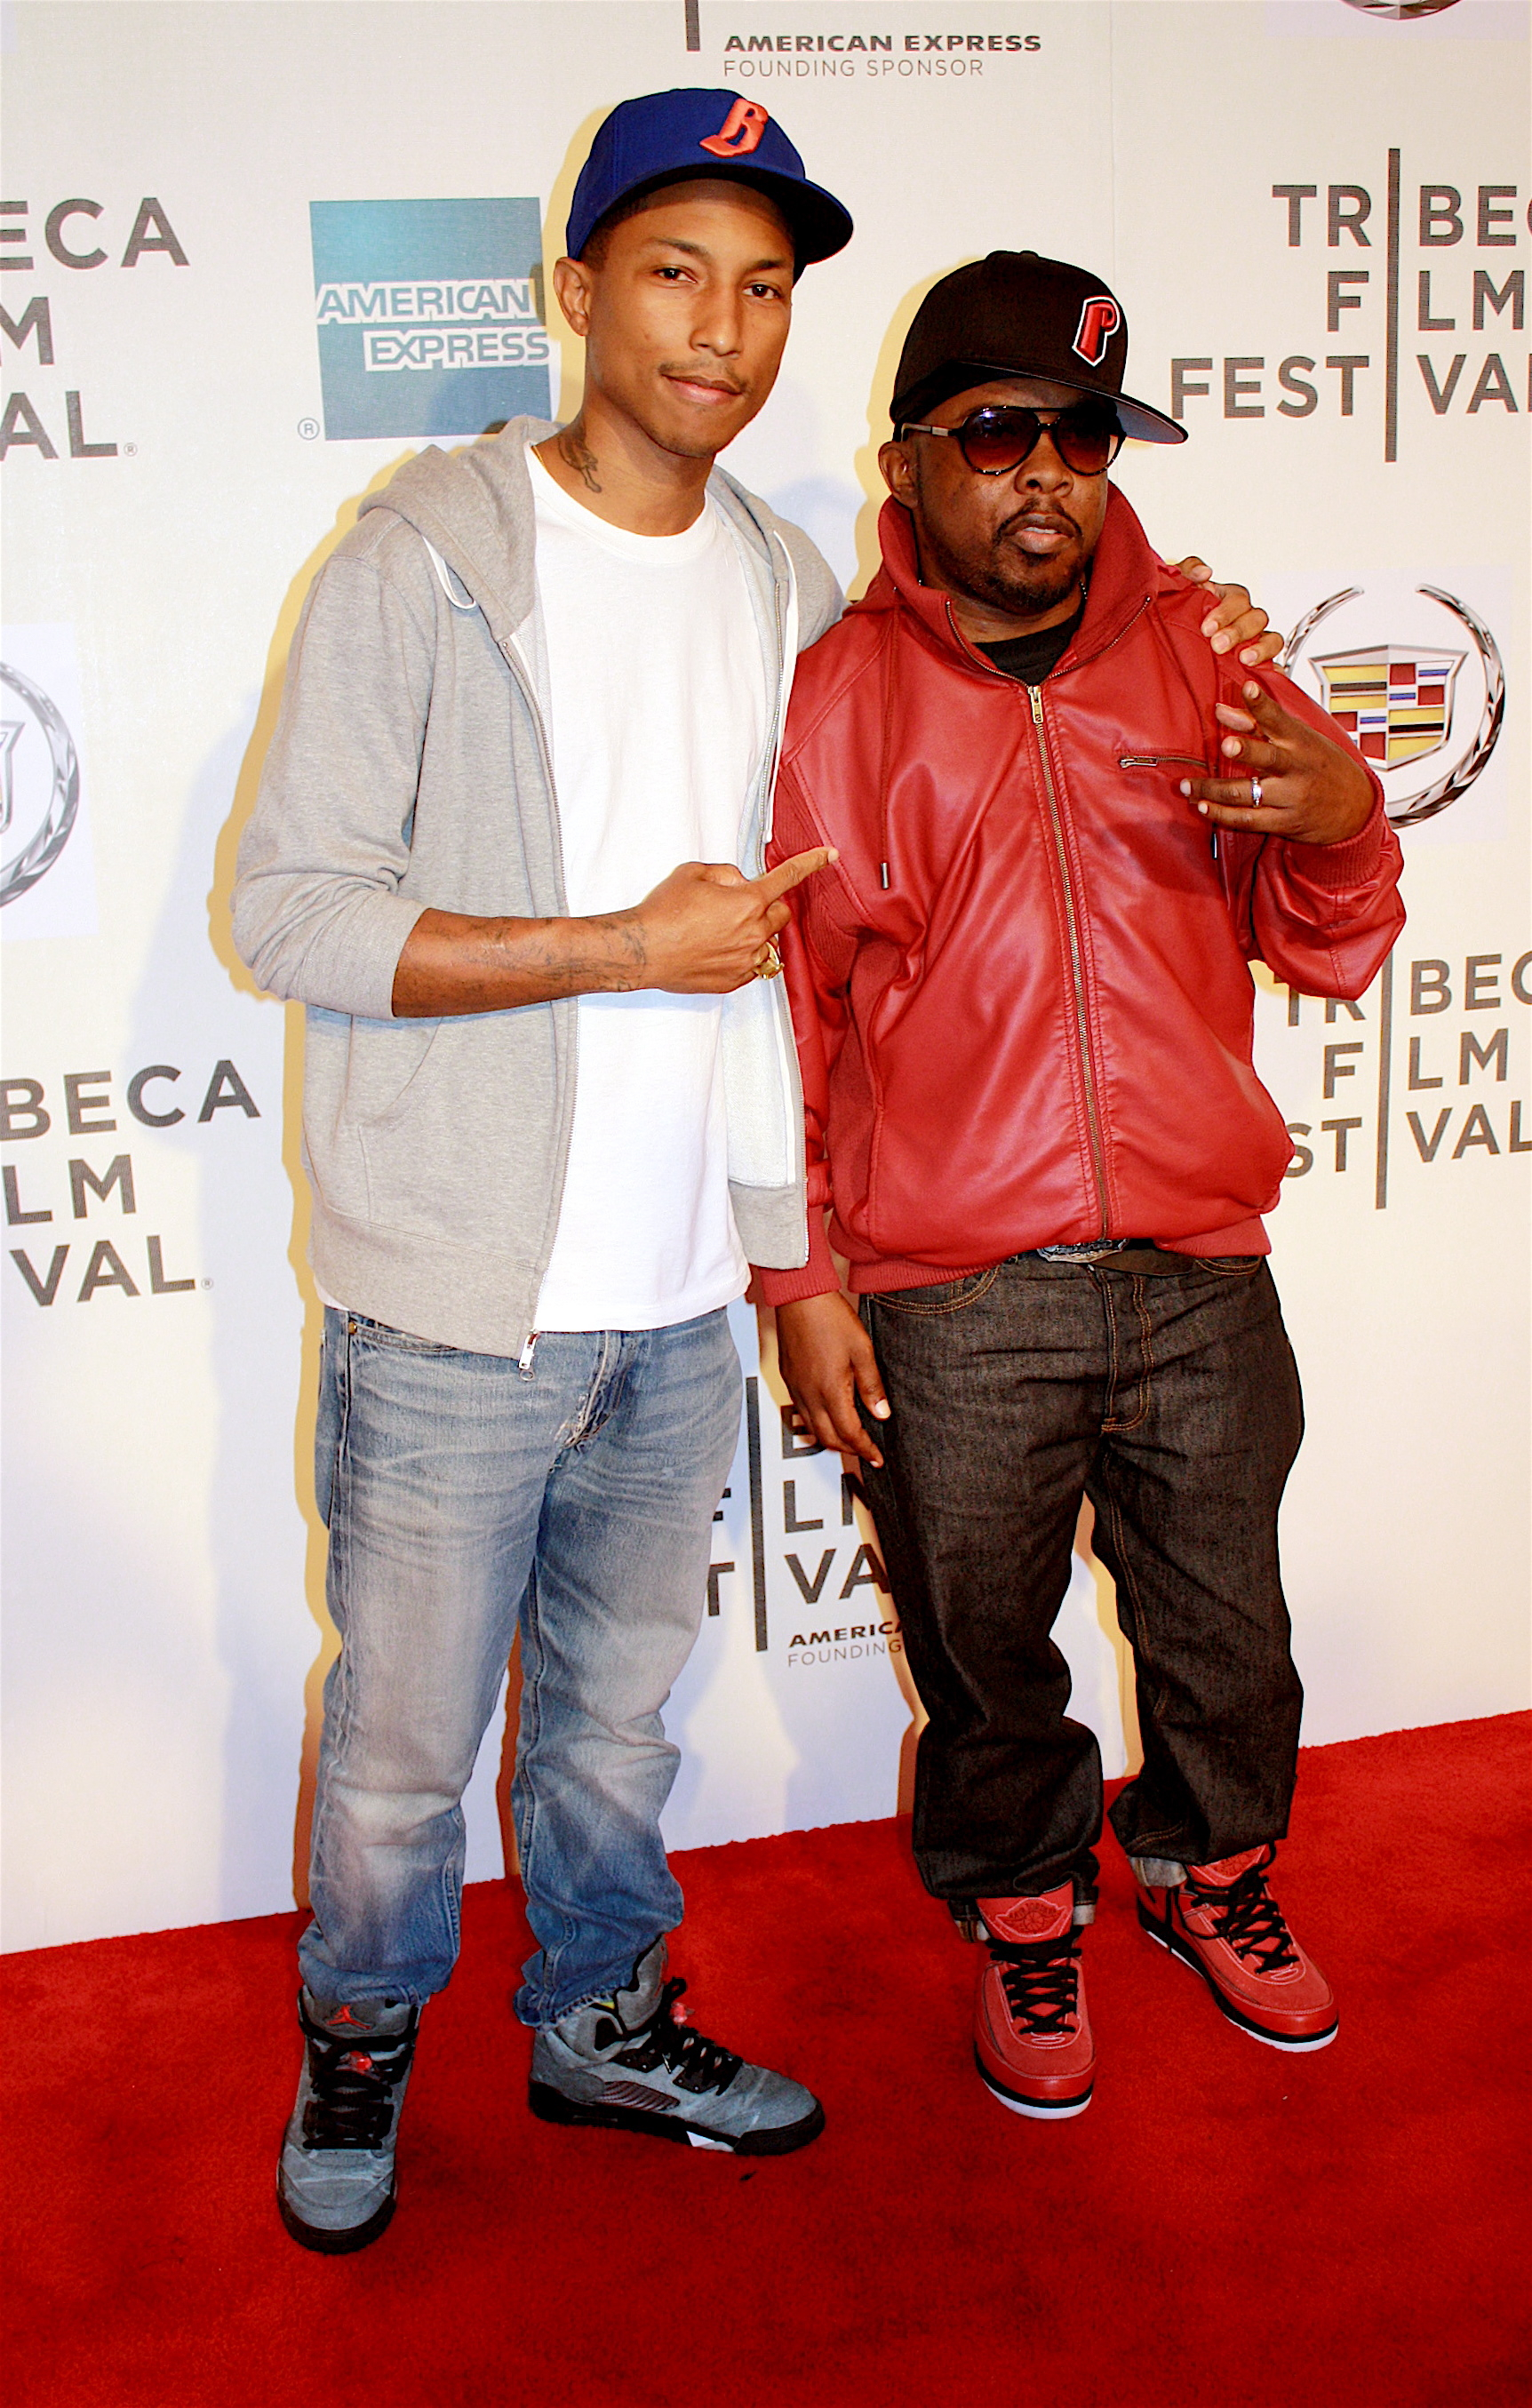 "04/27/2011 - Pharrell Williams and Phife Dawg - 10th Annual Tribeca Film Festival - ""Beats, Rhymes & Life: The Travels of a Tribe Called Quest"" Premiere - Arrivals - Tribeca Performing Arts Center - New York City, NY, USA - Keywords: Malik Issac Taylor, Tribe Called Quest, Q Tip, Phife Dawg, Tribeca Film Festival, Beats, Rhymes and Life, Pharrell Wiliams, N.E.R.D Orientation: Portrait Face Count: 1 - False - Photo Credit: Hollie Jones / PR Photos - Contact (1-866-551-7827) - Portrait Face Count: 1"